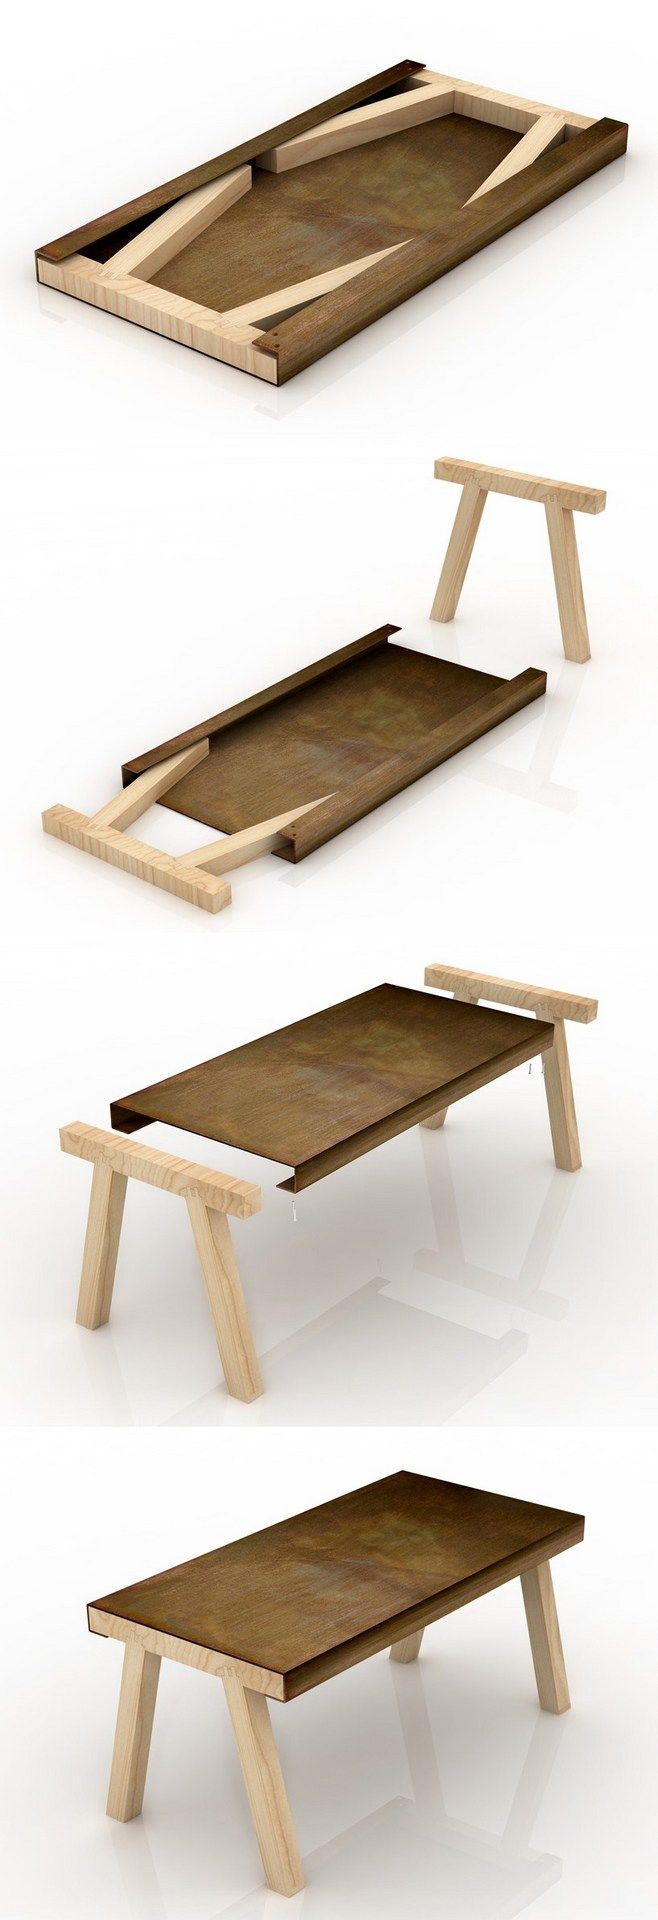 """""""Mastro"""" is a small furniture, which is inspired by traditional craftsmen in the old studio table or stool. Desktop is etched iron materials, and on each side of a tank, you can put inside two fir stand, space-saving for storage. The two wooden legs easily extracted, a simple plug can be used on the metal table. Dimensions: 80 x 160 x 75 cm. Designer: gum design"""